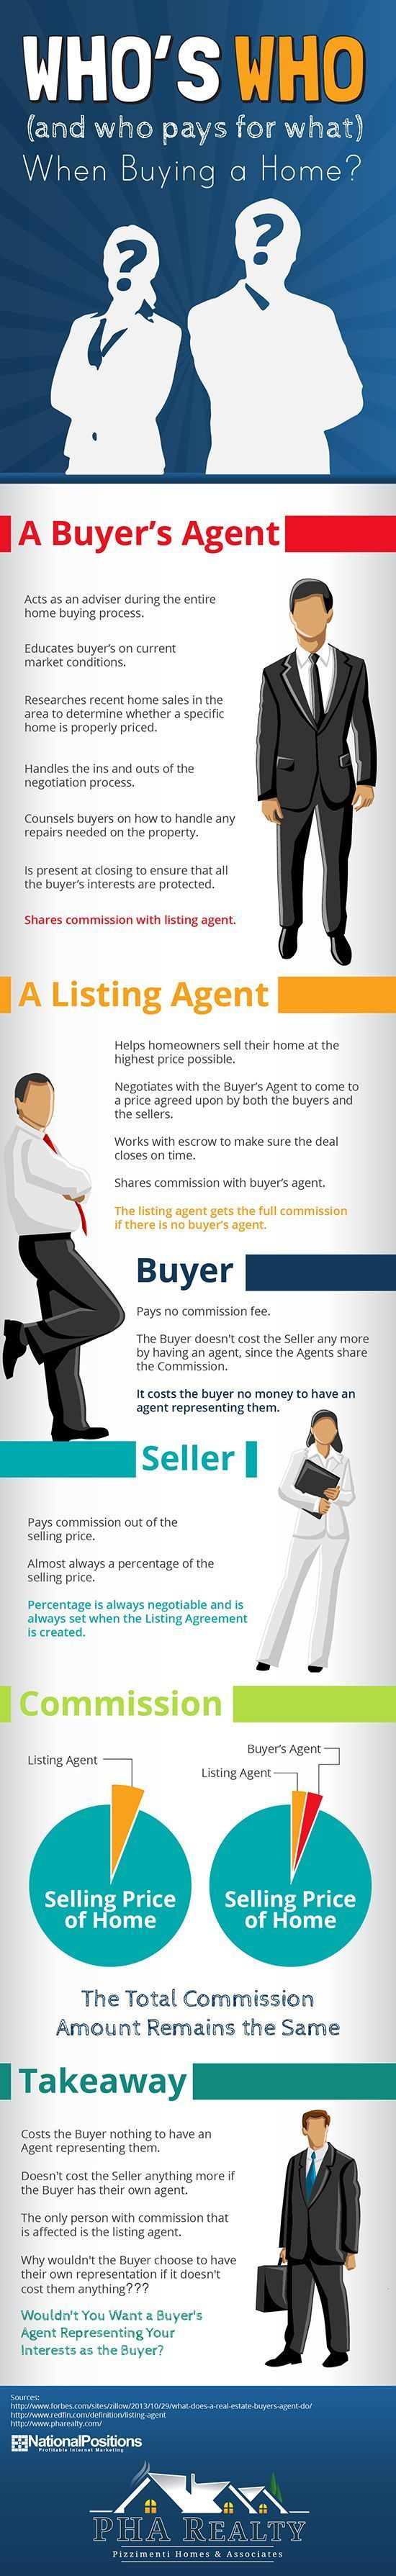 Who's Who in Real Estate .. and who pays for what If you have any questions at all about buying or selling a home, I'm glad to help as a friend, not as someone that's trying to win your business :-) -Anne Nymark (813) 293-9236 #sellingrealestate